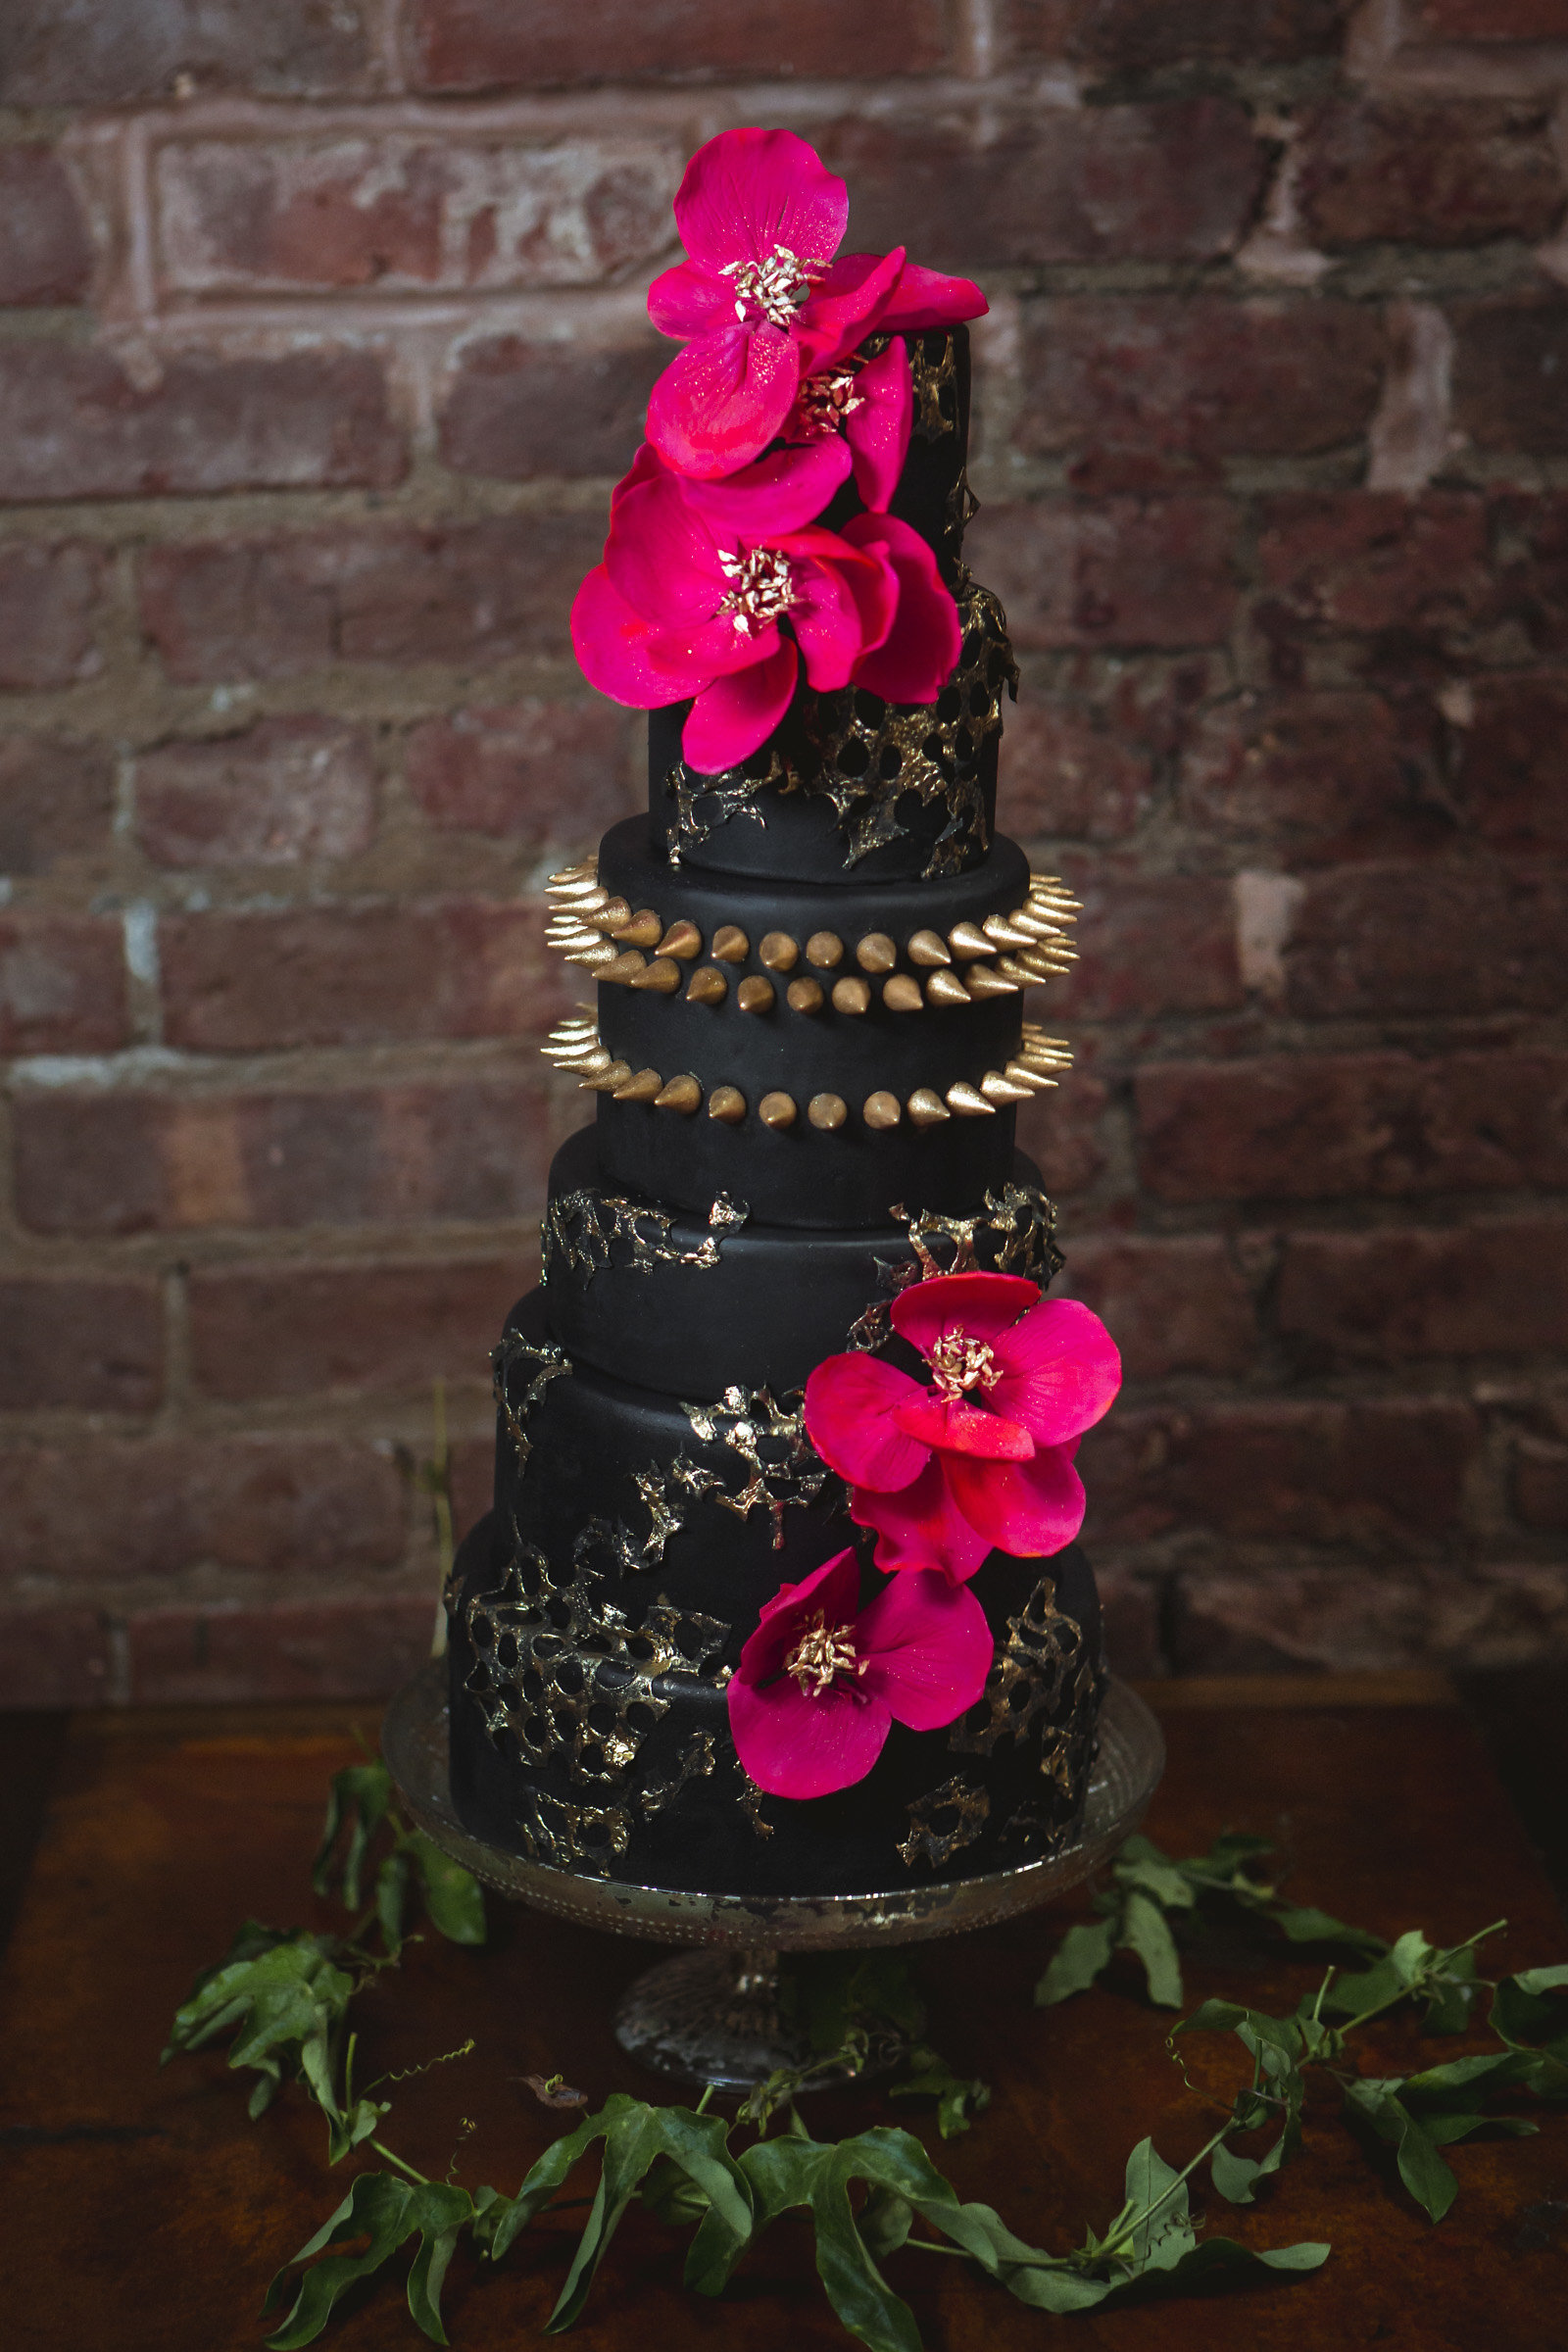 Rock star wedding cake from Lael Cakes